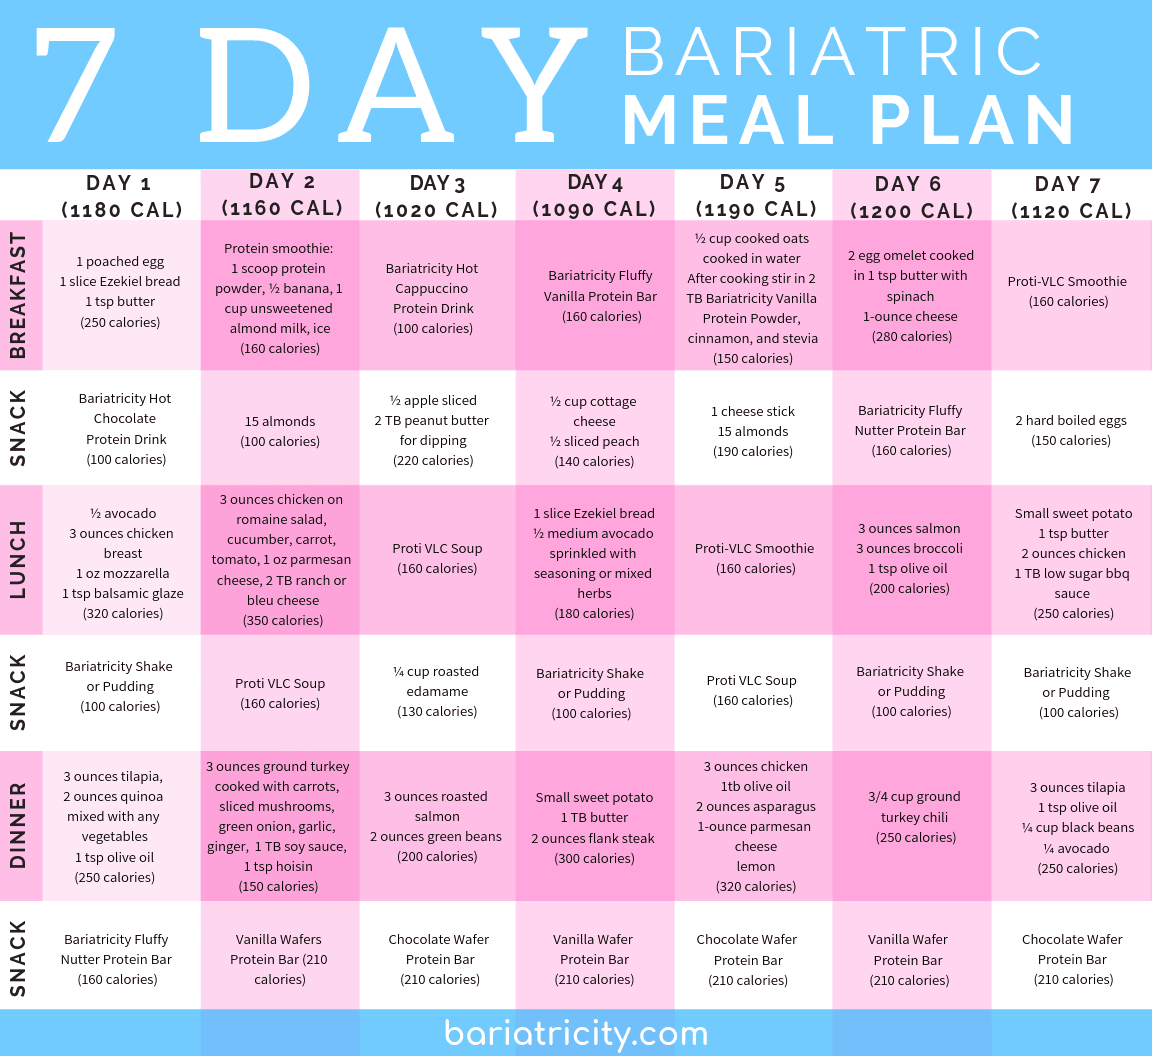 1200 calorie meal plan for bariatric surgery